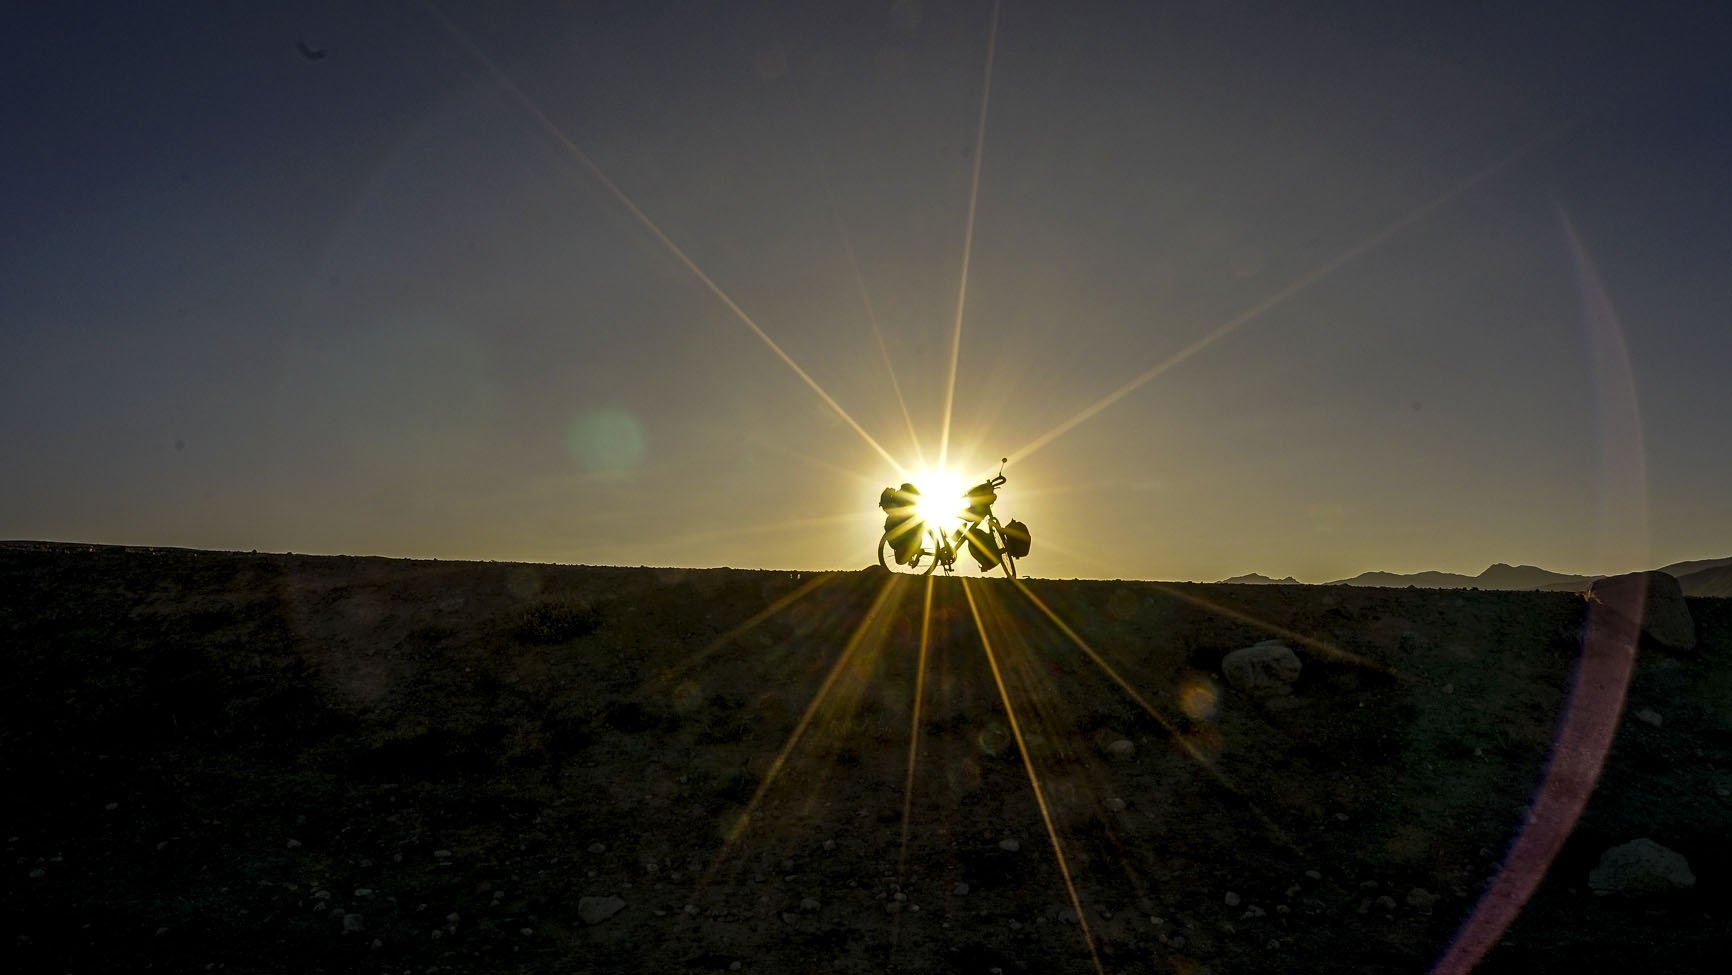 Bike silhouetted against the sunrise